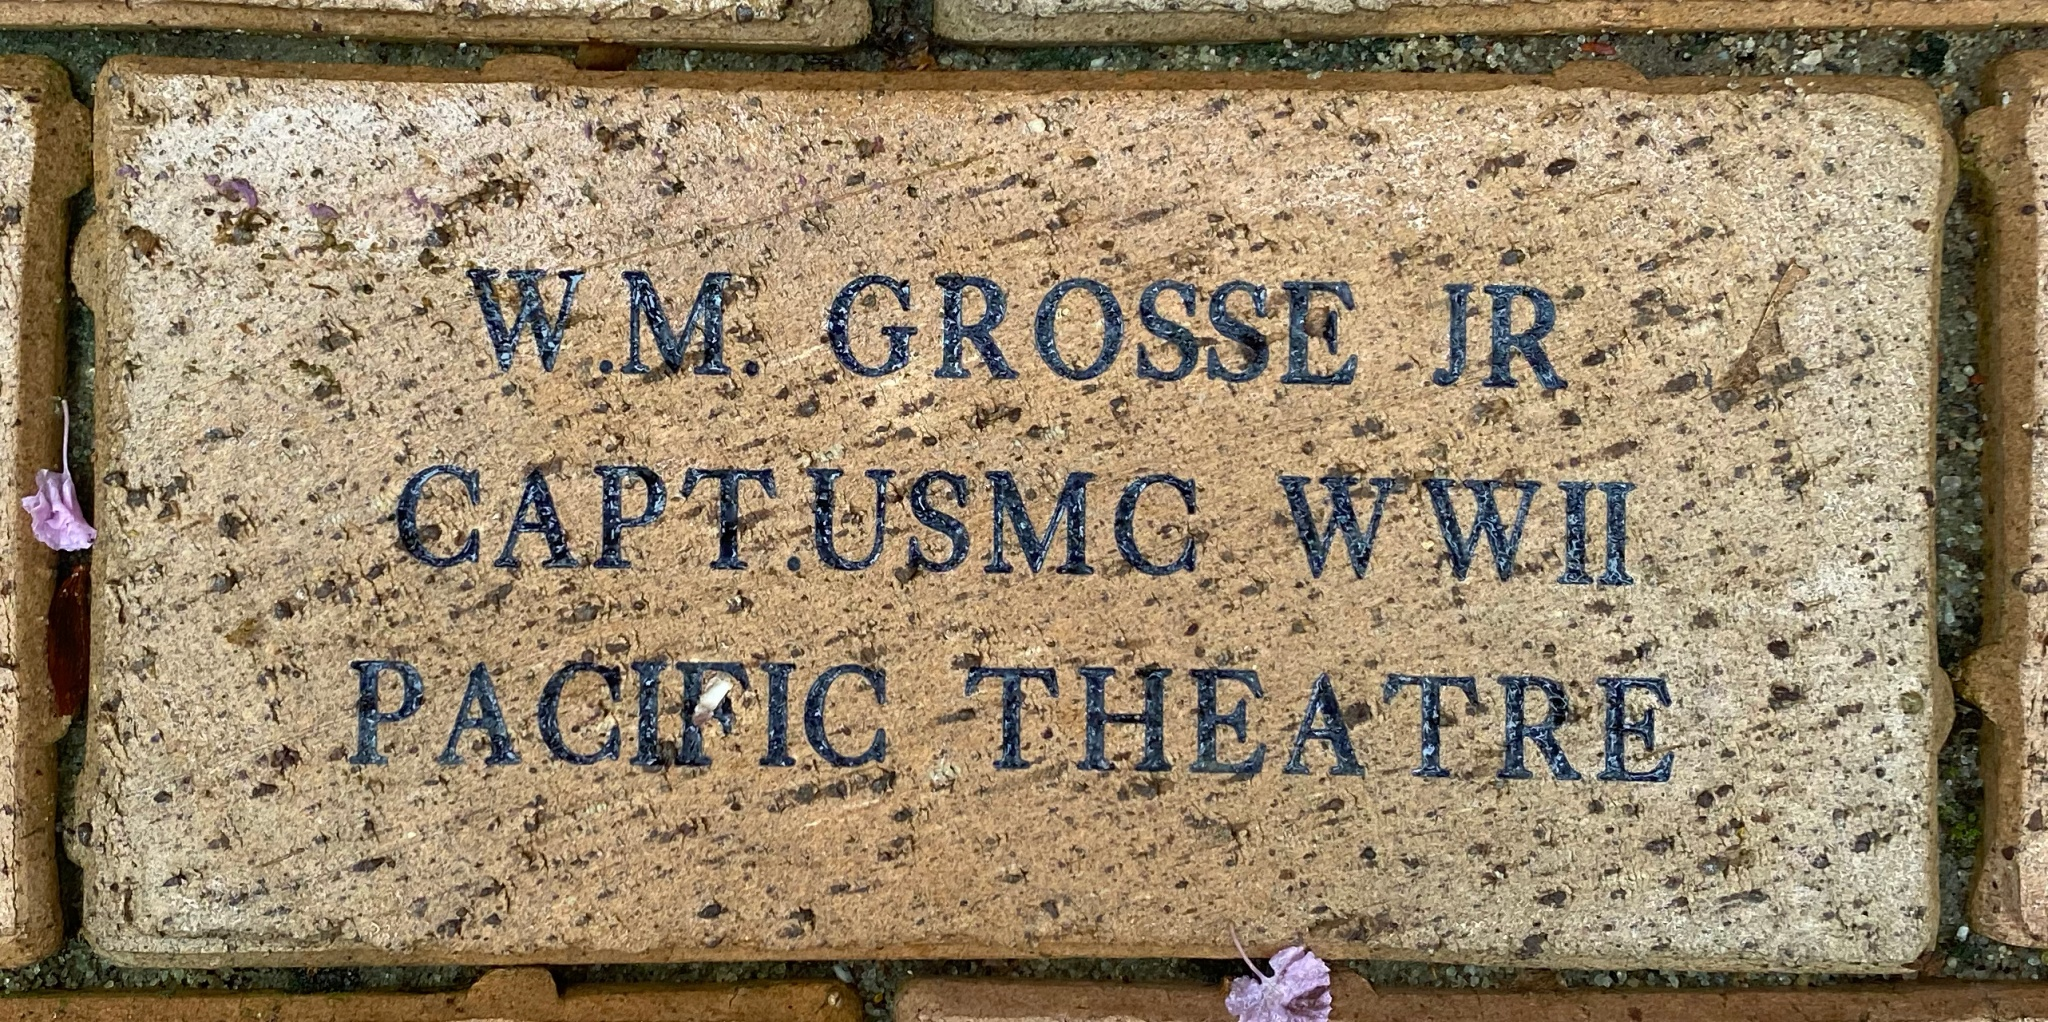 W.M. GROSSE JR CAPT. USMC WWII PACIFIC THEATER